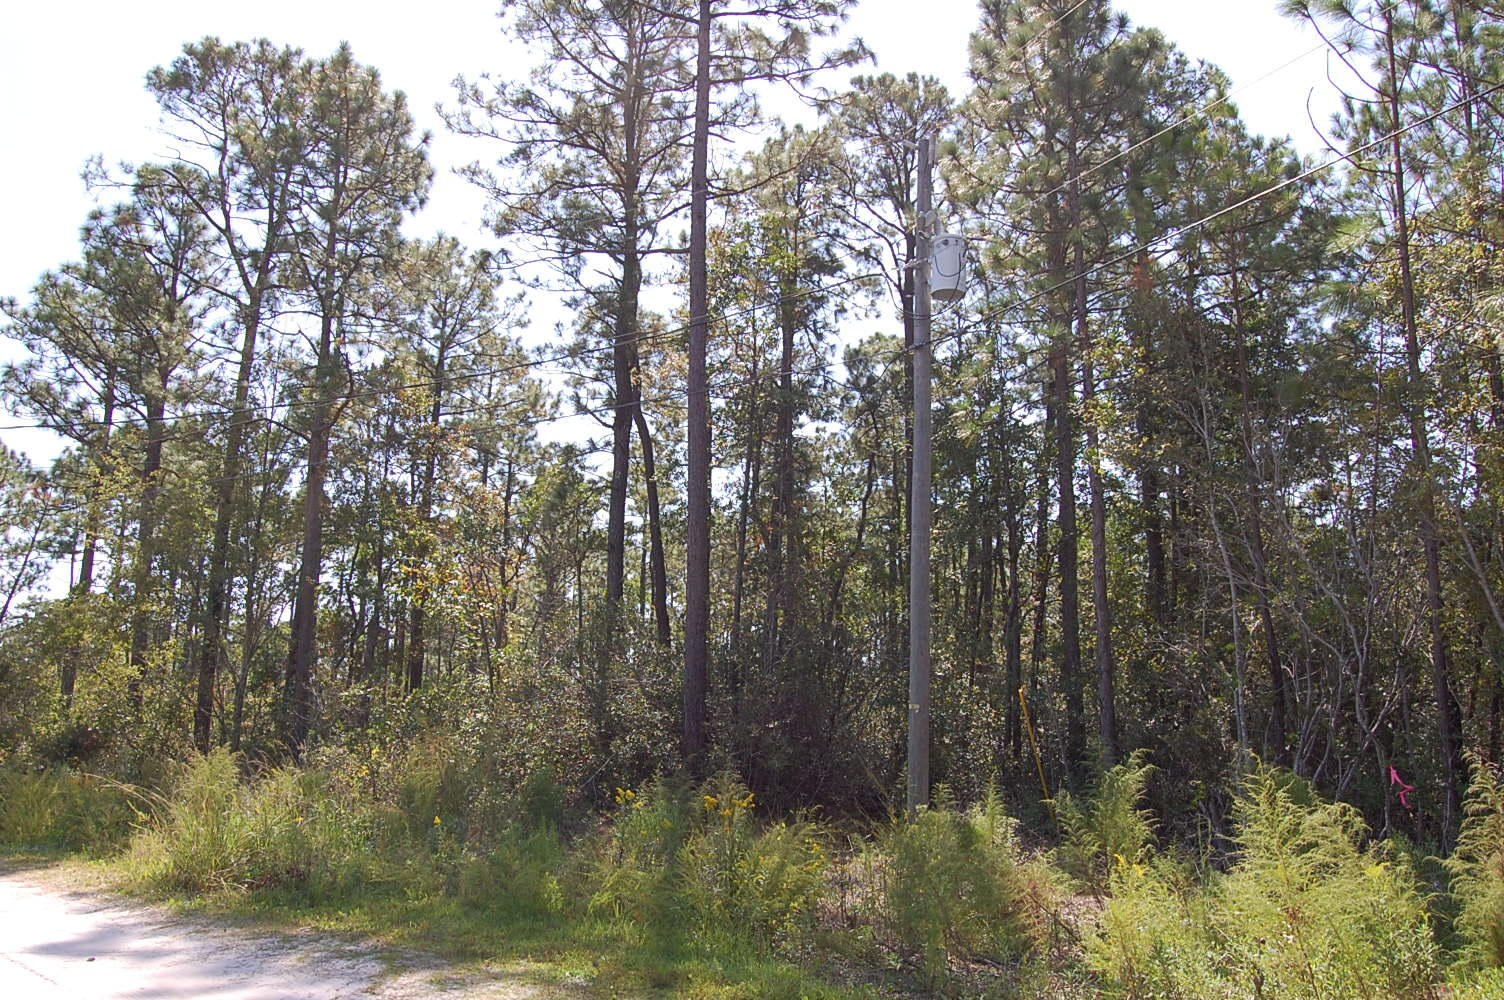 One Acre Property Minutes from the Topsail Beach - Image 0